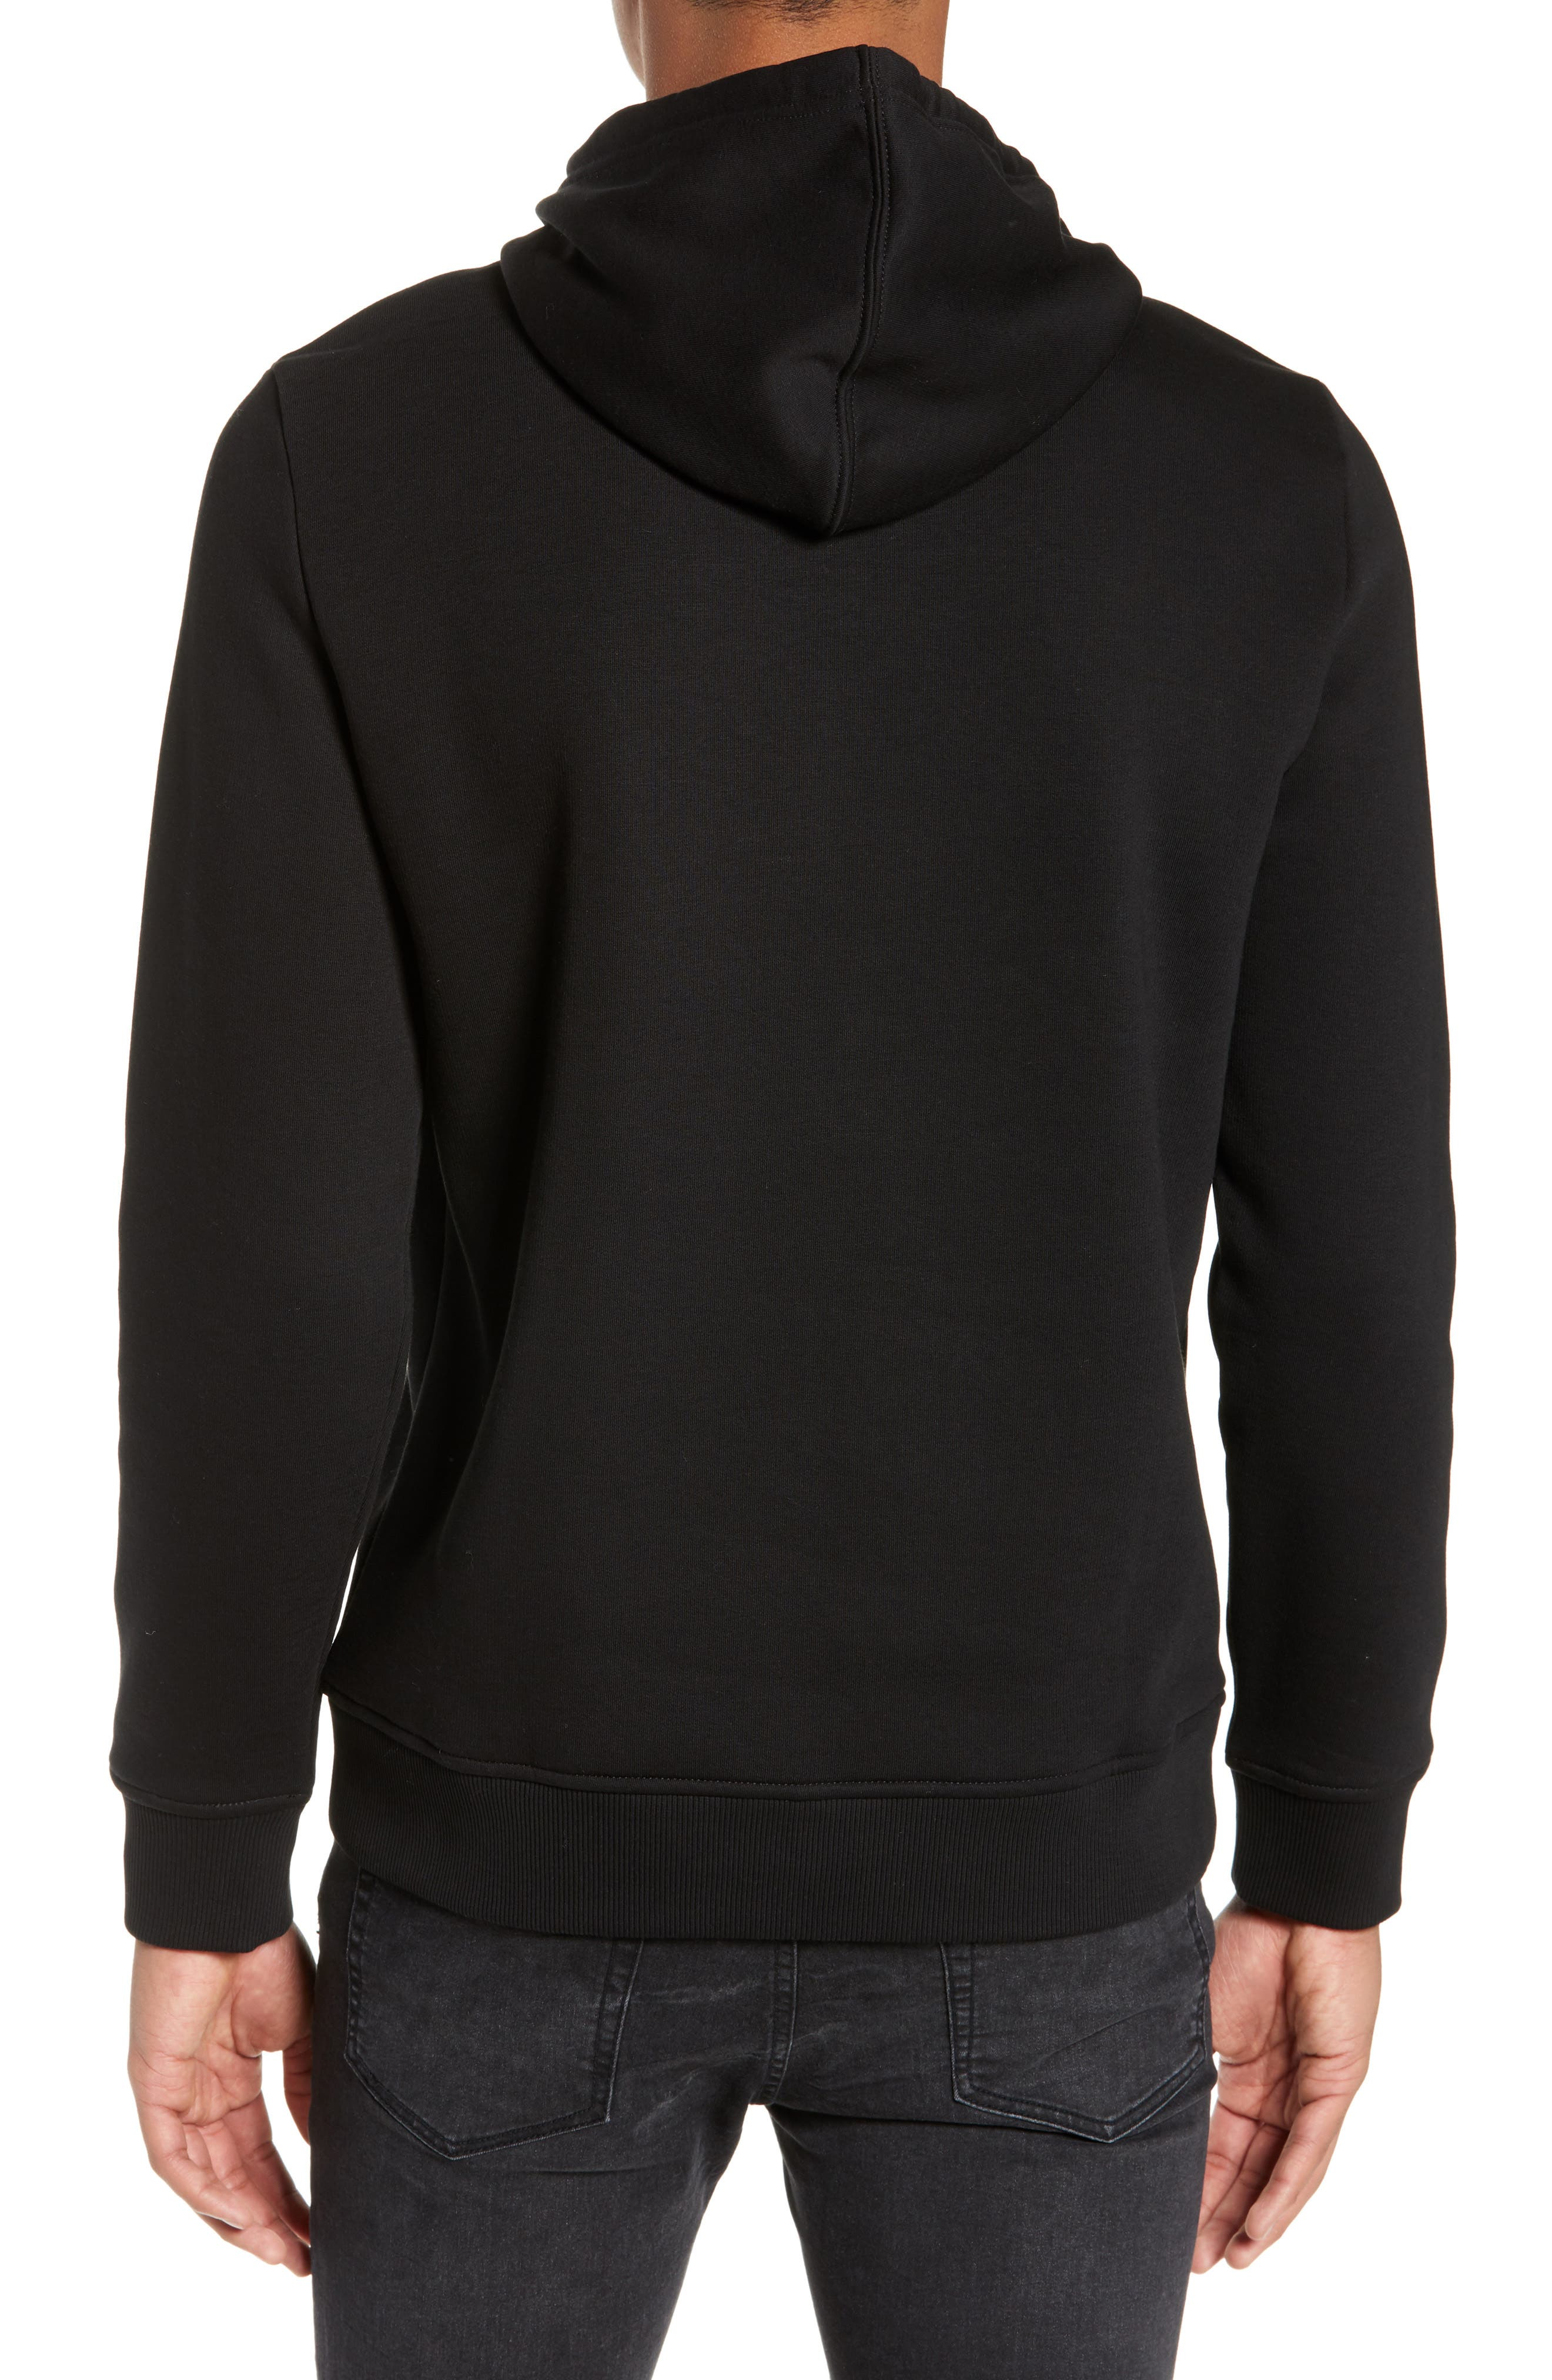 CALVIN KLEIN JEANS,                             Stacked Logo Hoodie,                             Alternate thumbnail 2, color,                             010